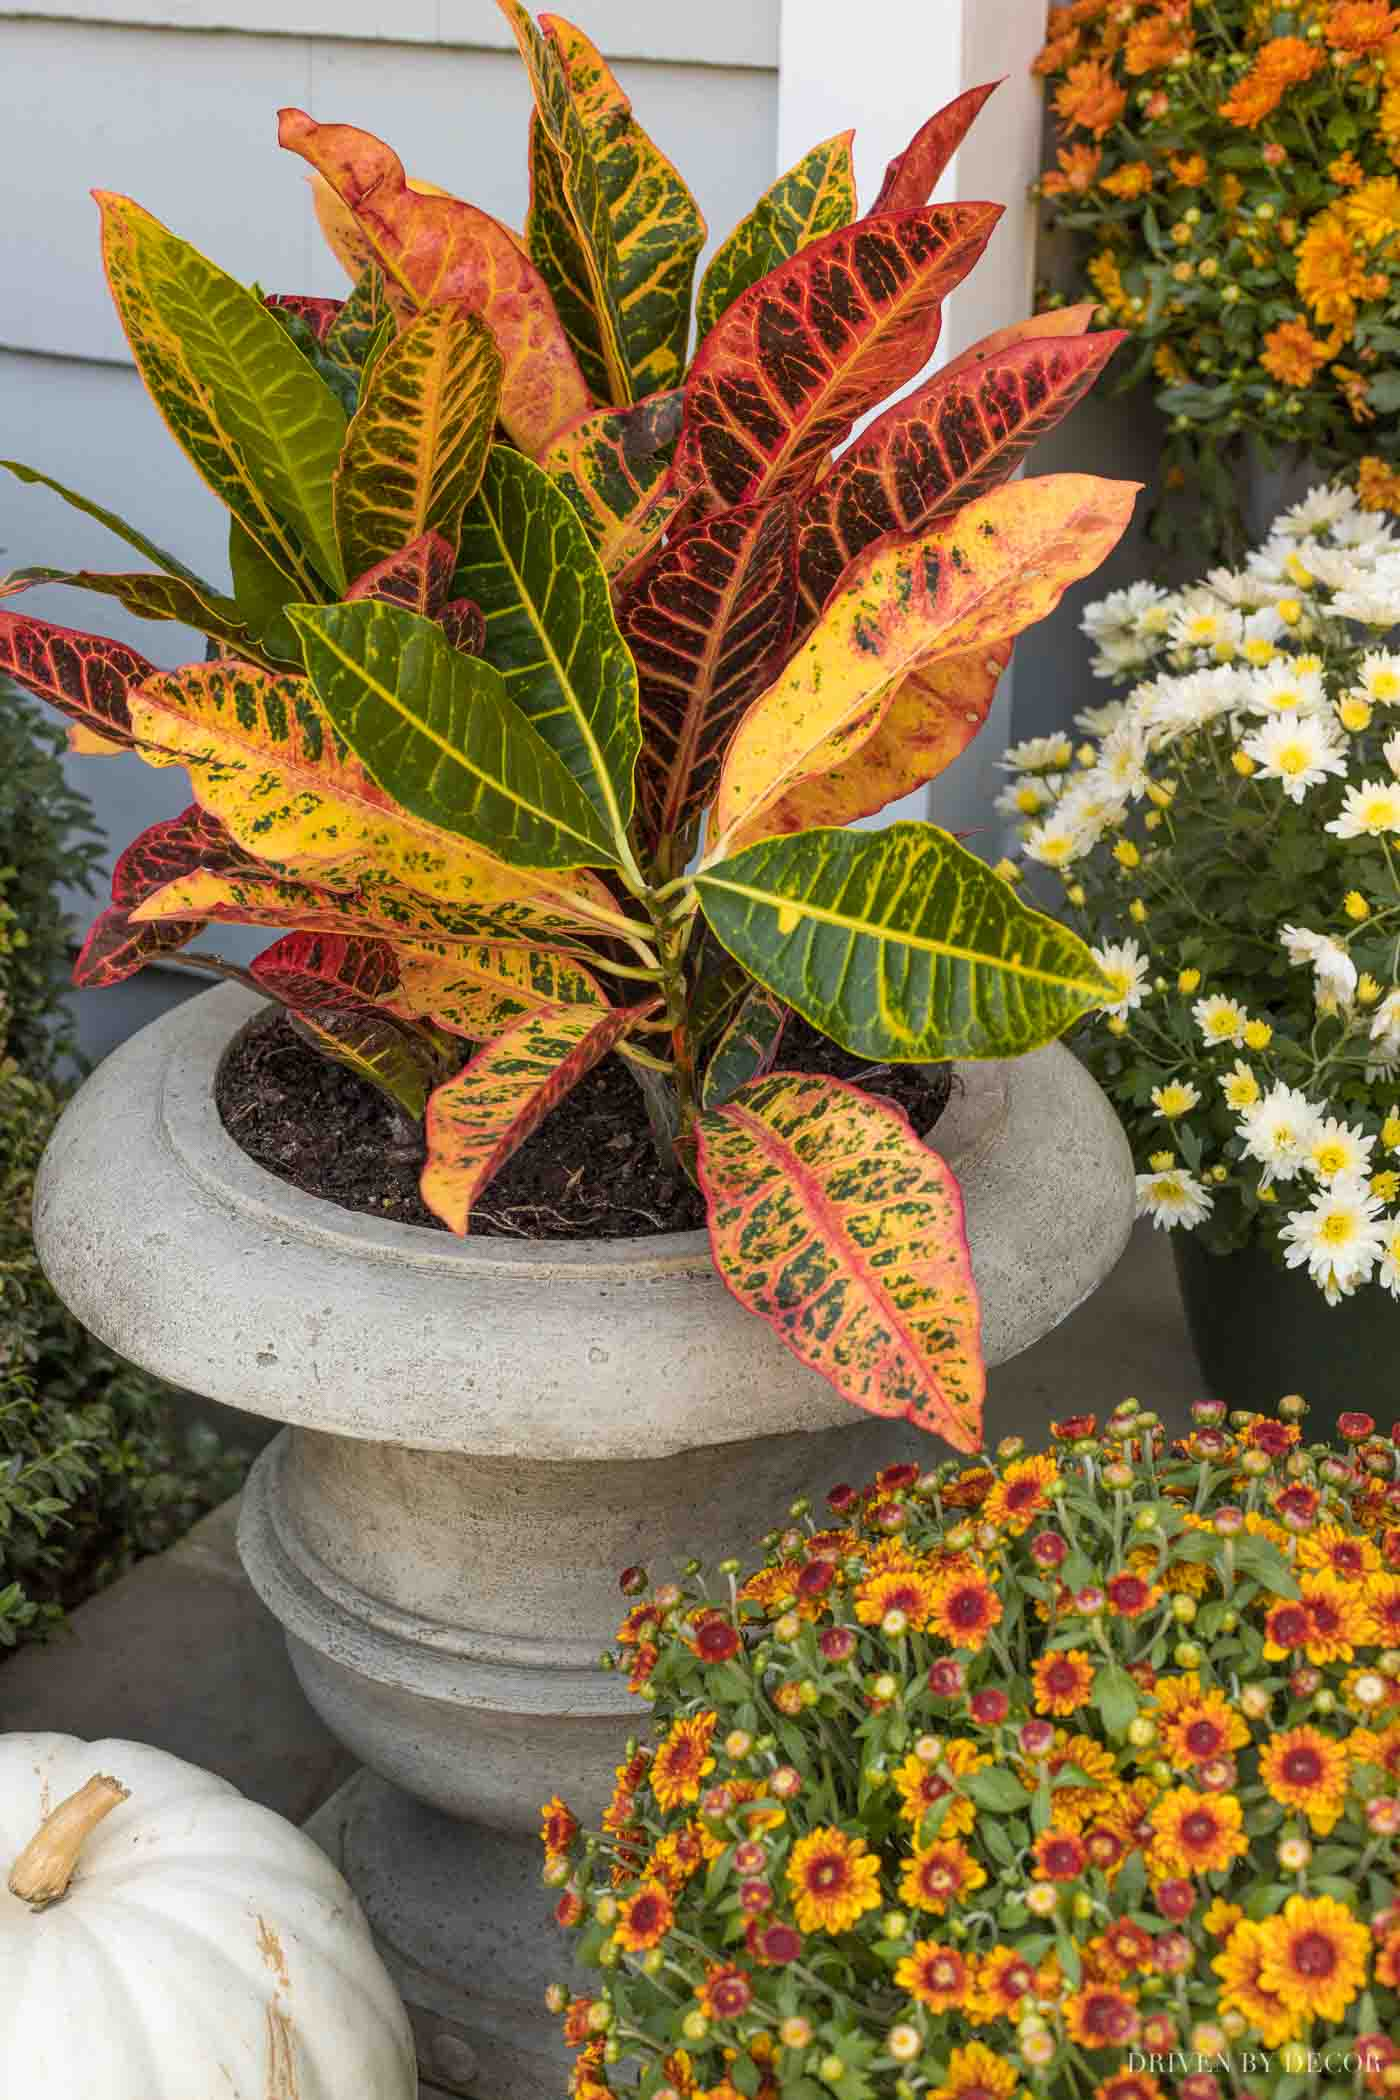 Our fall front porch decor includes these cast stone urn planters holding crotons!